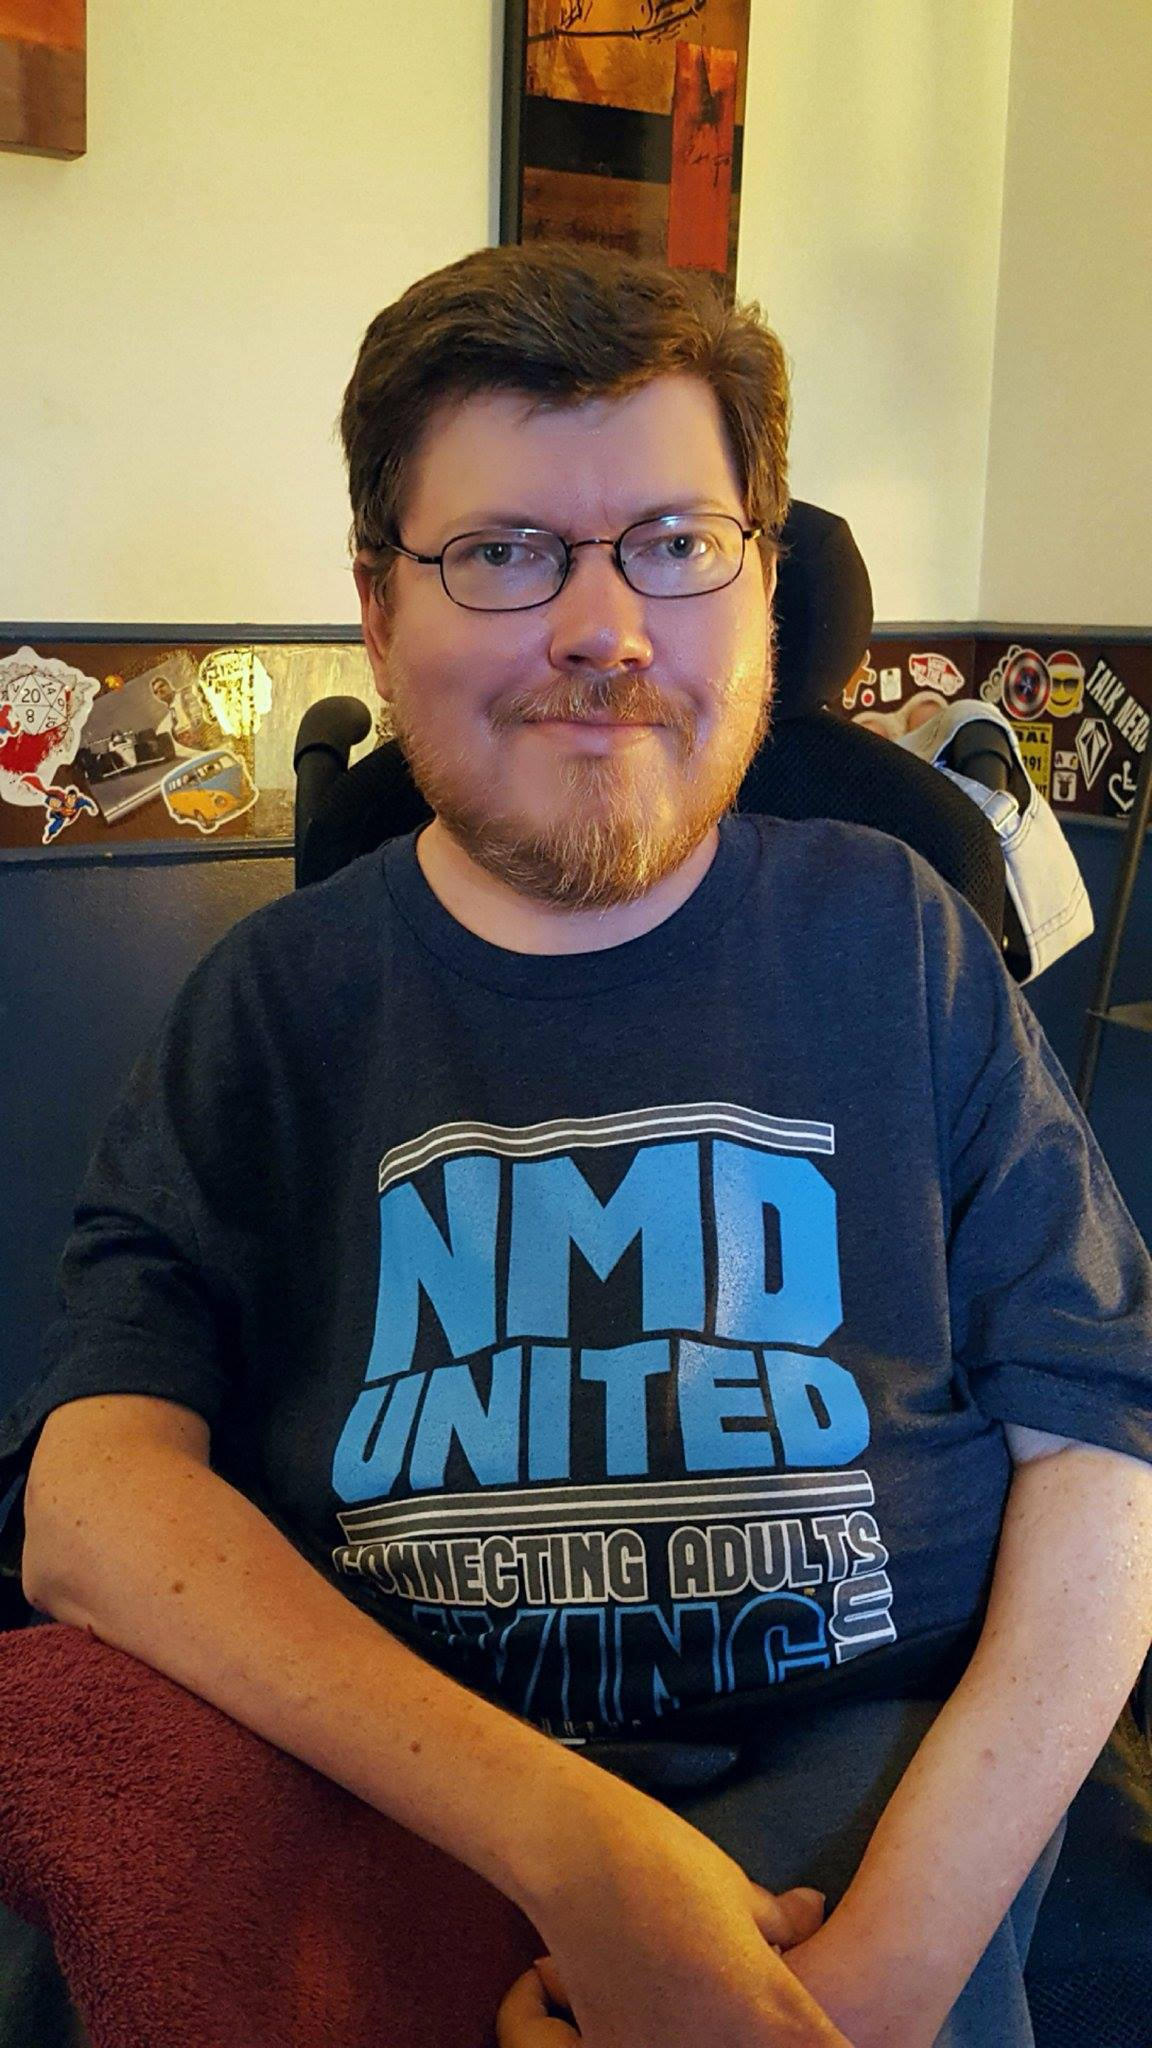 Man with short beard wearing a NMD United tee.